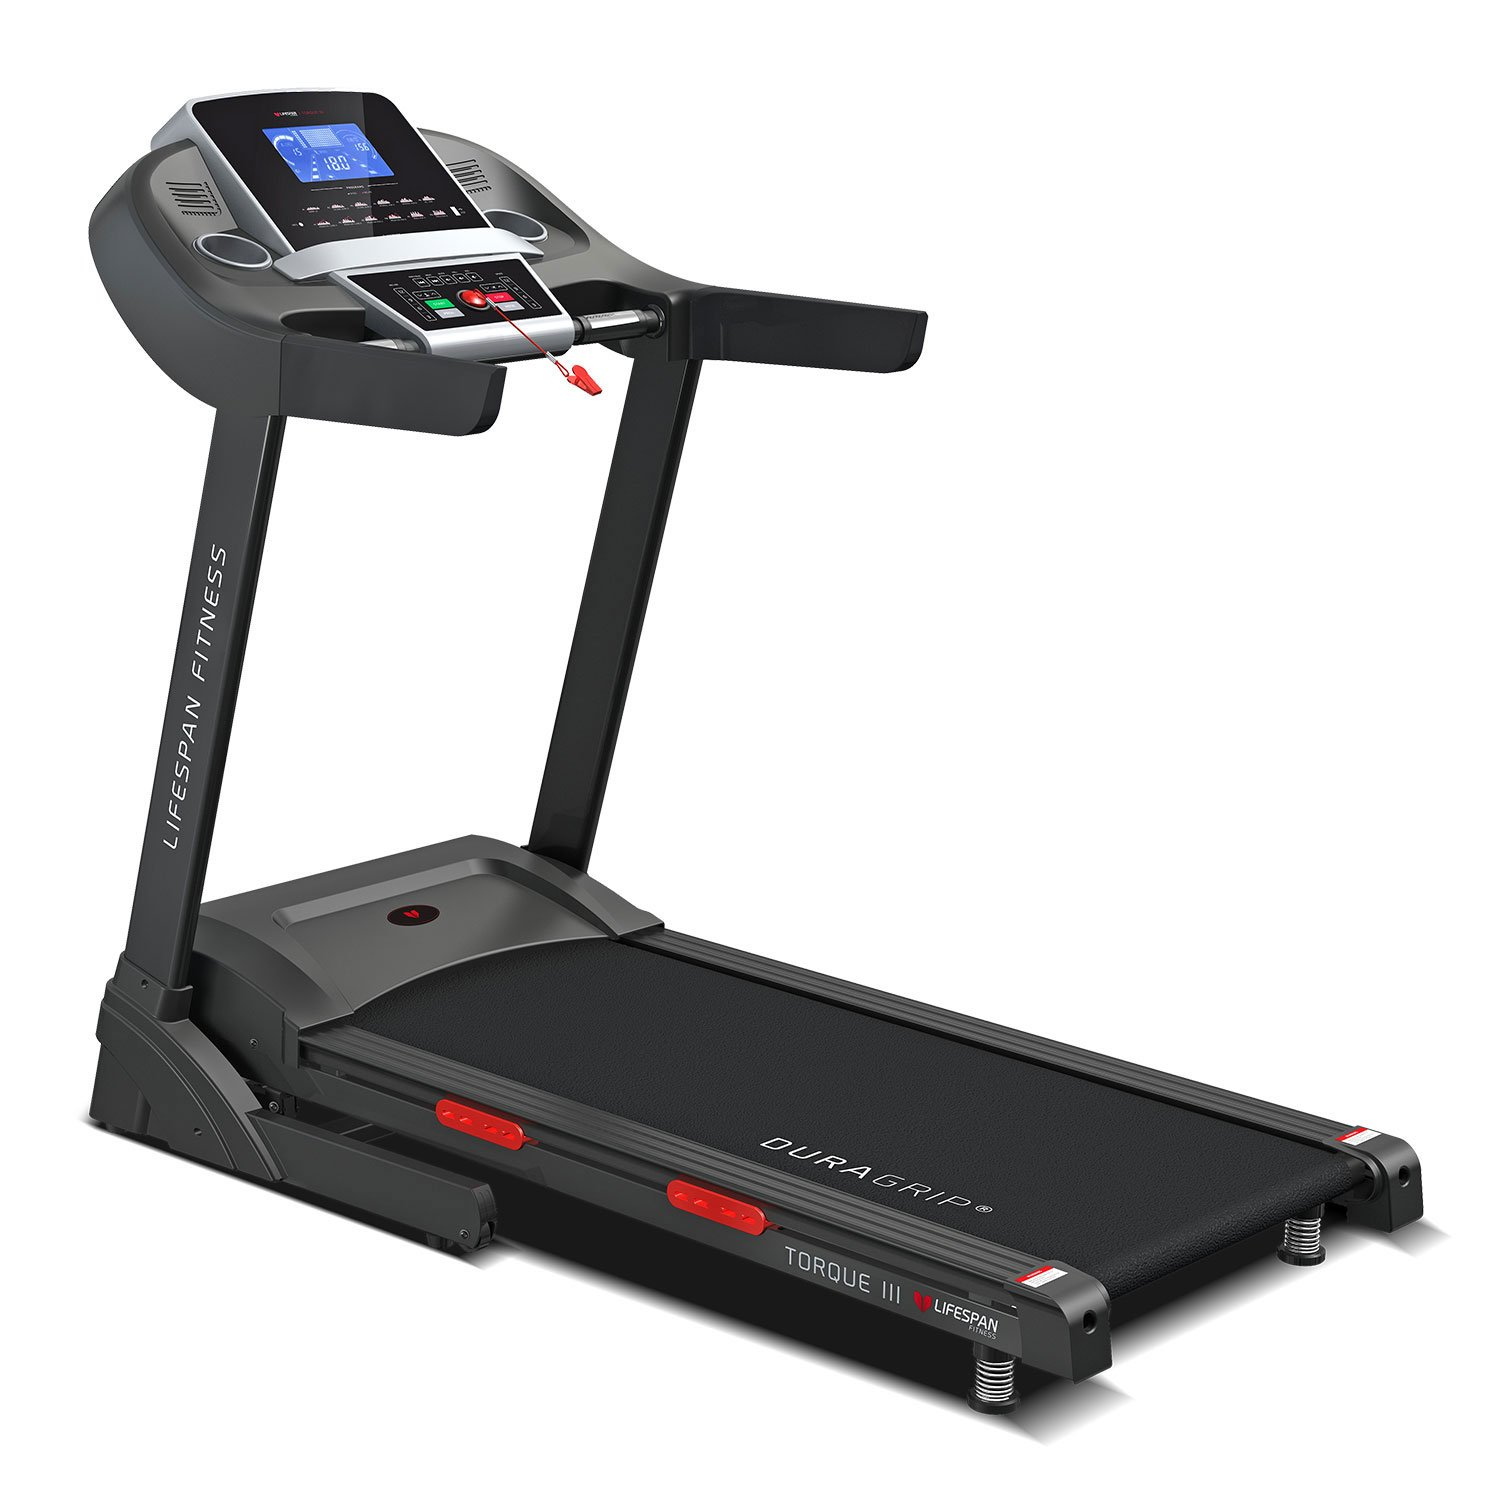 LSG Torque 3 Treadmill Running Machine